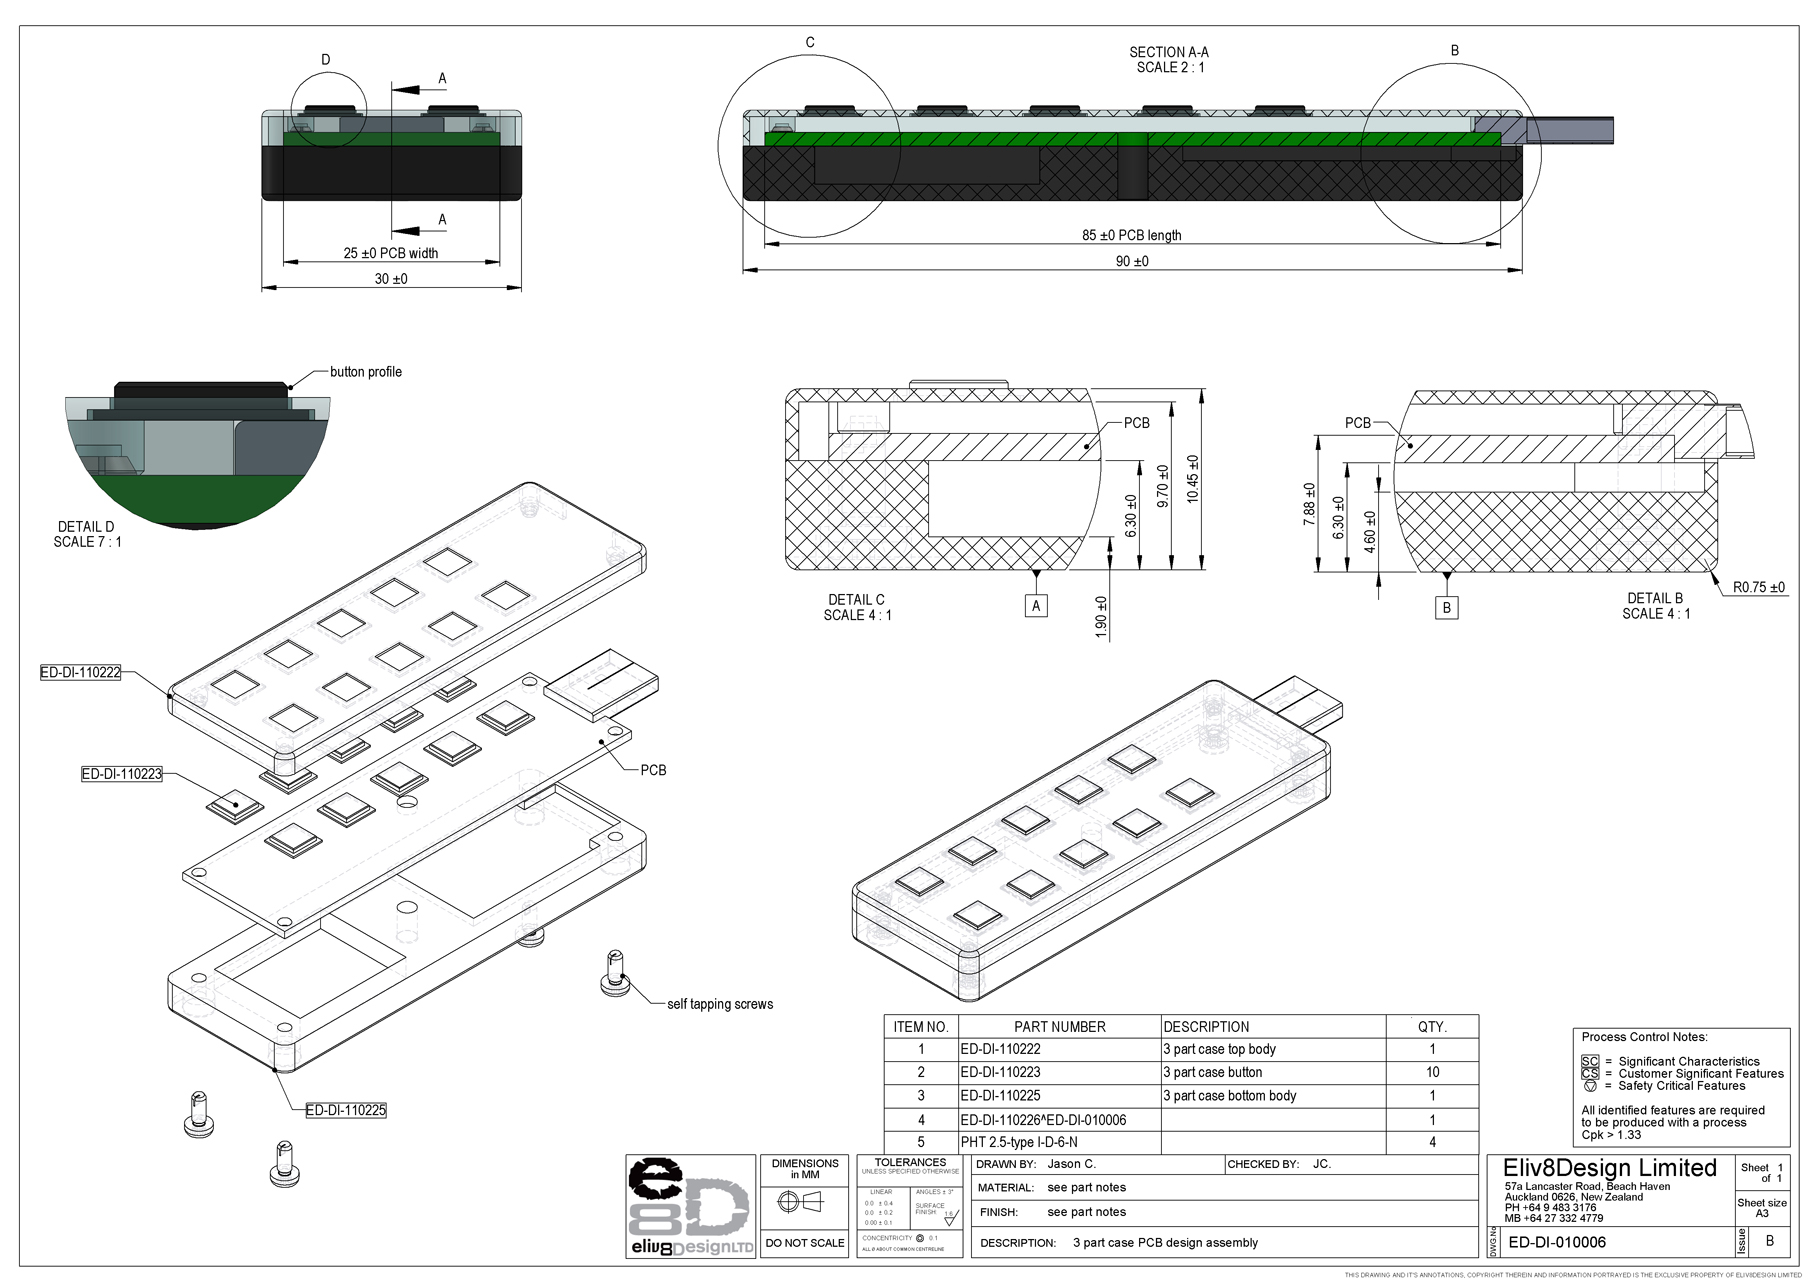 Electrical Design Amp Electrical Engineering Services Work